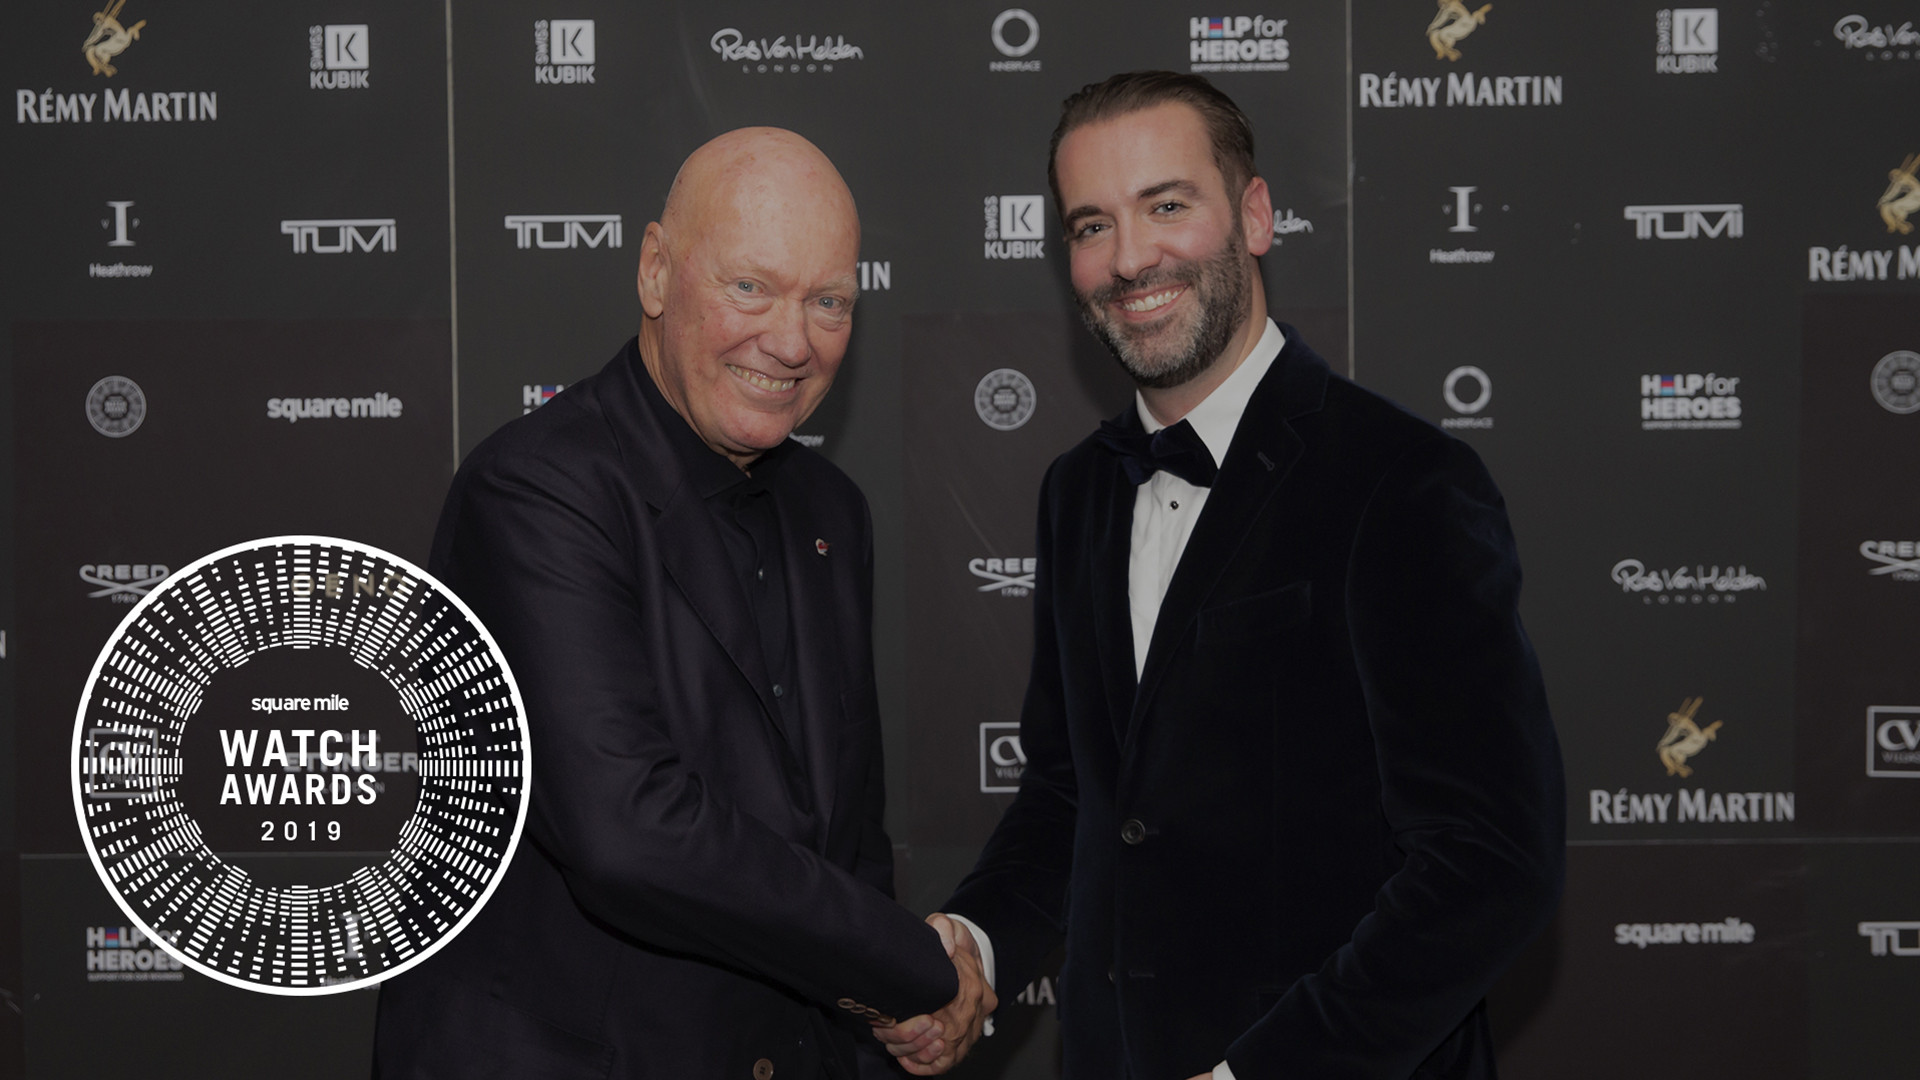 Mark Hedley and Jean-Claude Biver